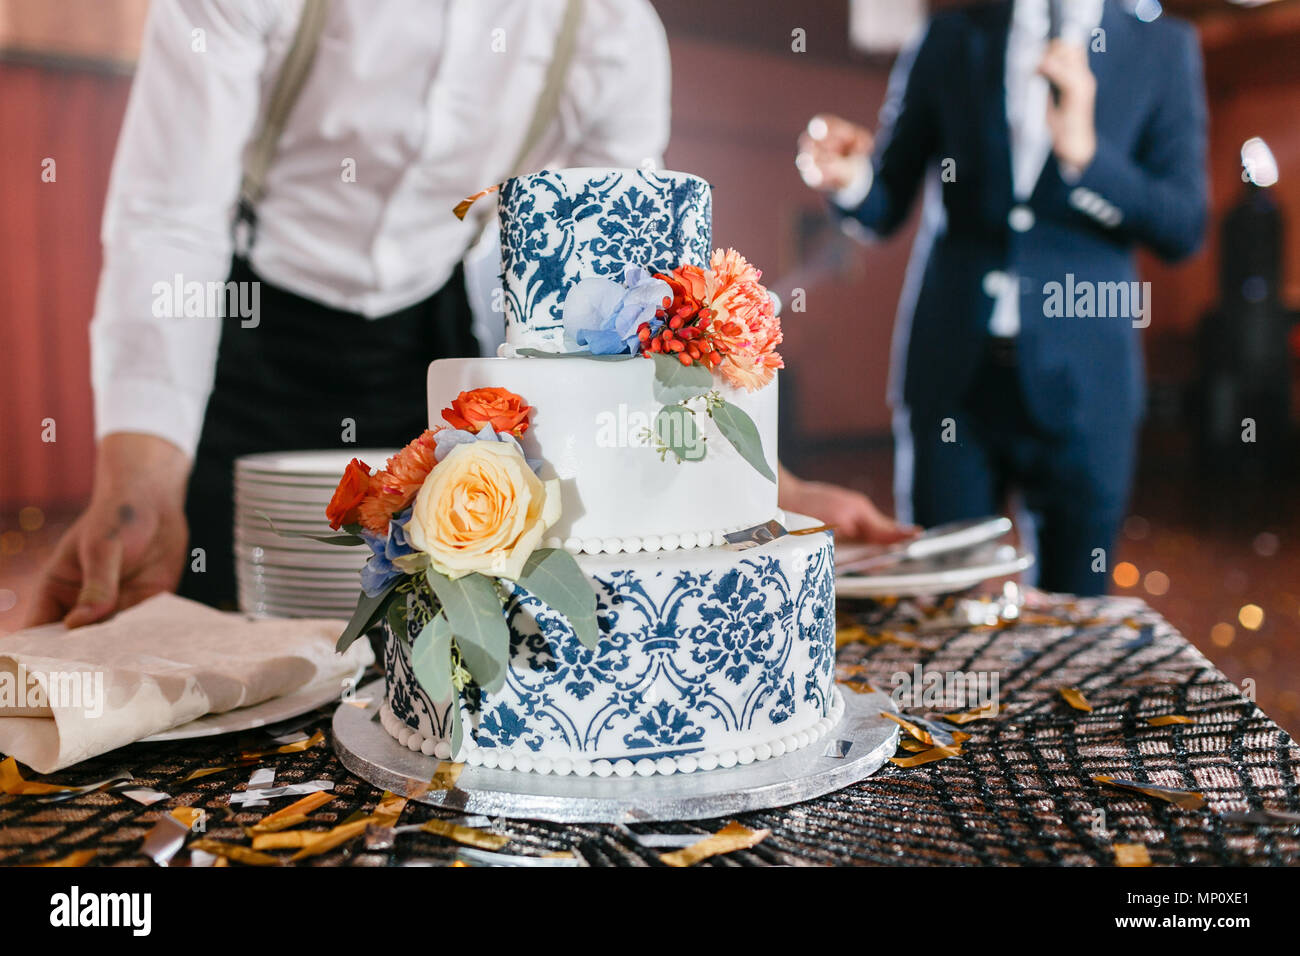 waiter will present at the restaurant. Wedding cake with flowers. Bride and groom cut sweet cake on banquet in restaurant. - Stock Image